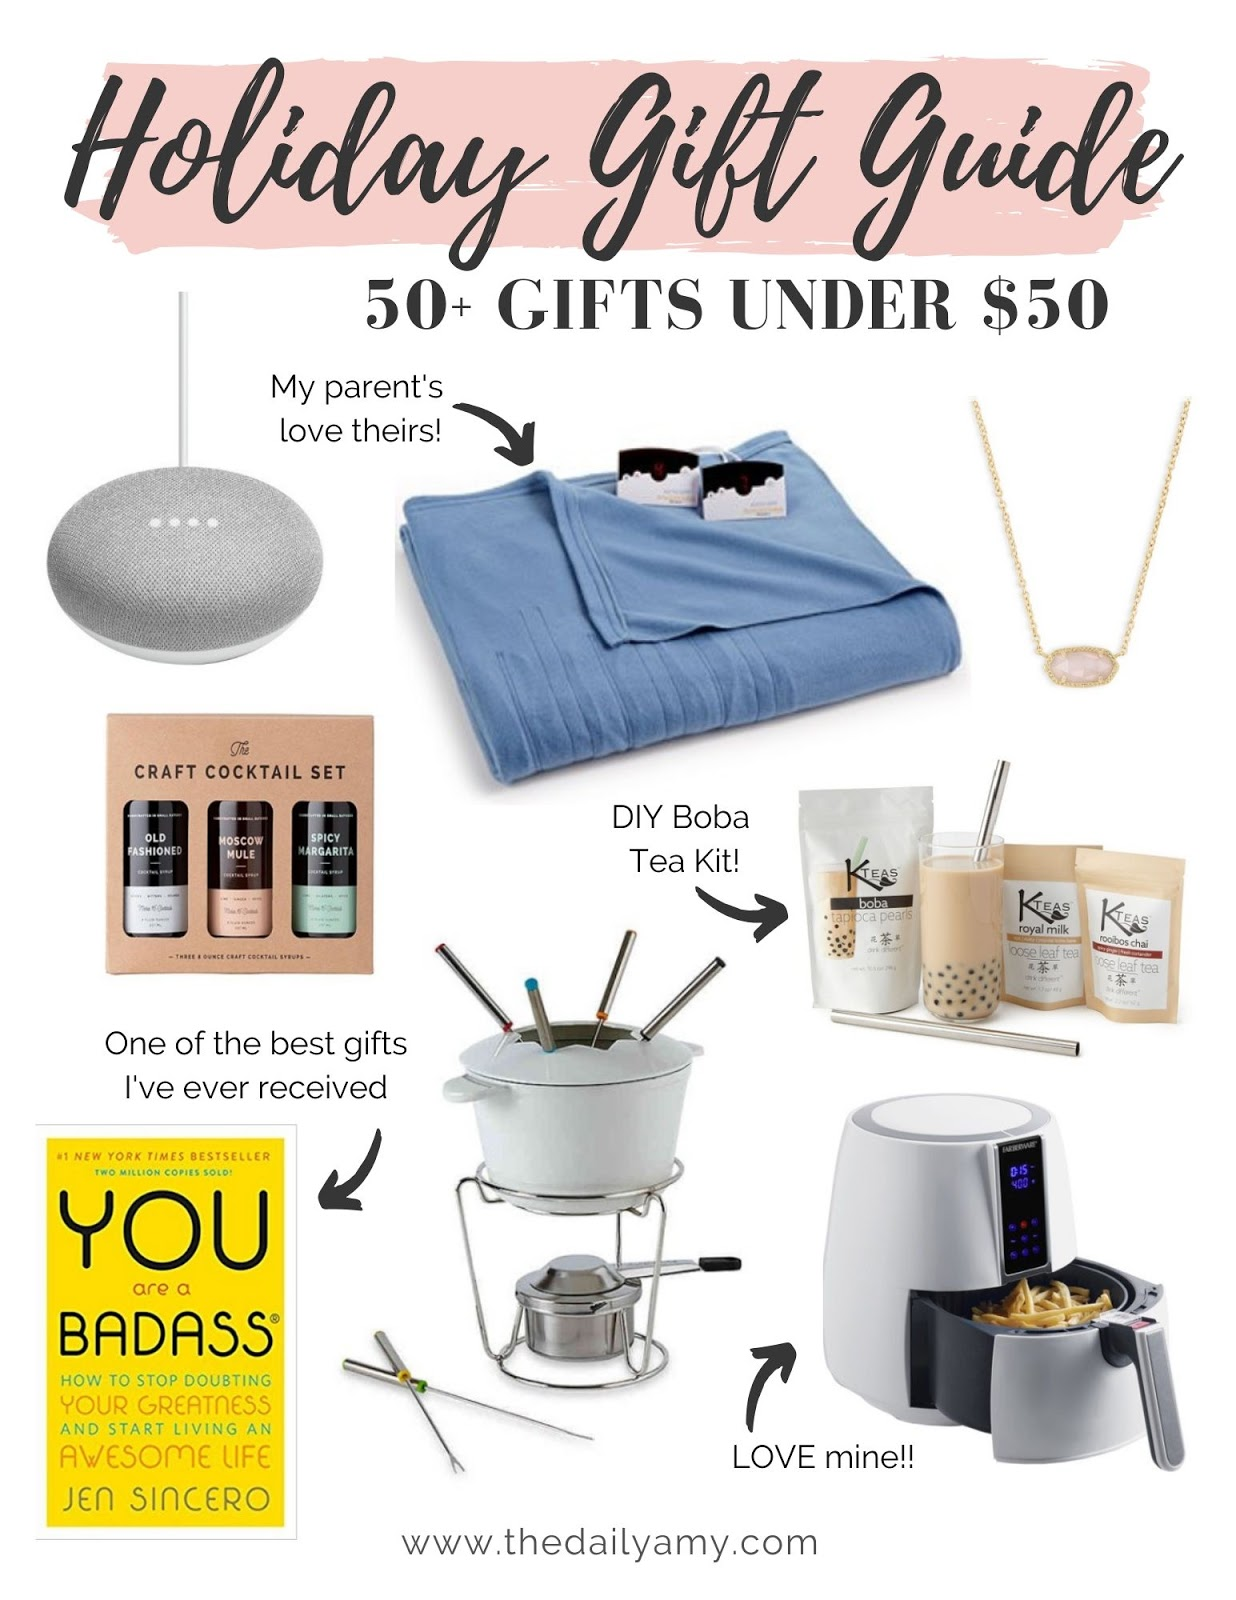 Holiday gift guide - gifts under $50 for everyone on your list